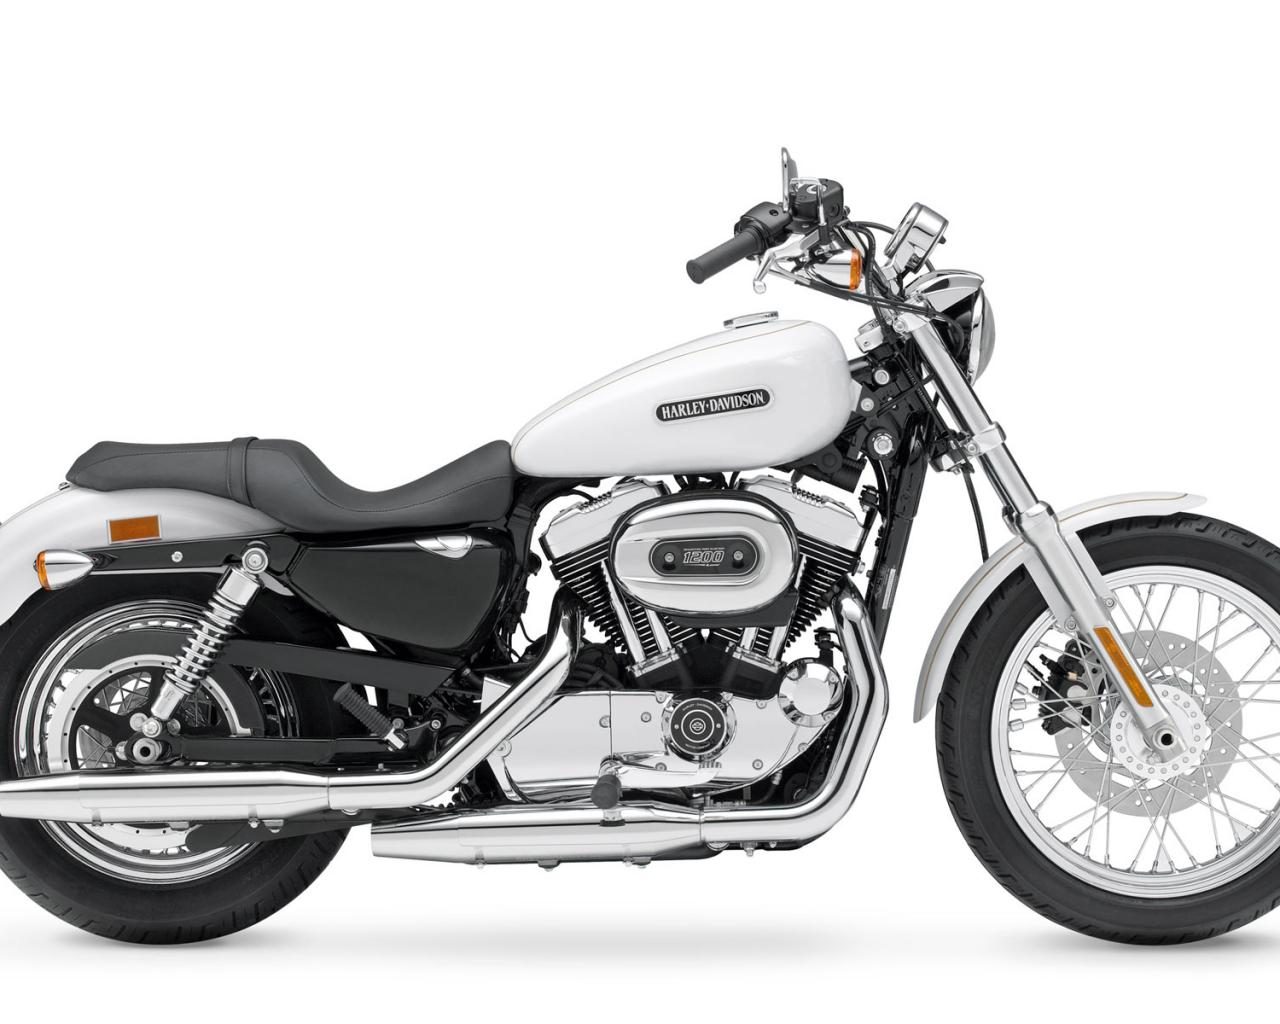 Harley-Davidson, Sportster, XL 1200 L Sportster 1200 Low, XL 1200 L Sportster 1200 Low 2008, мото, м 1280x1024